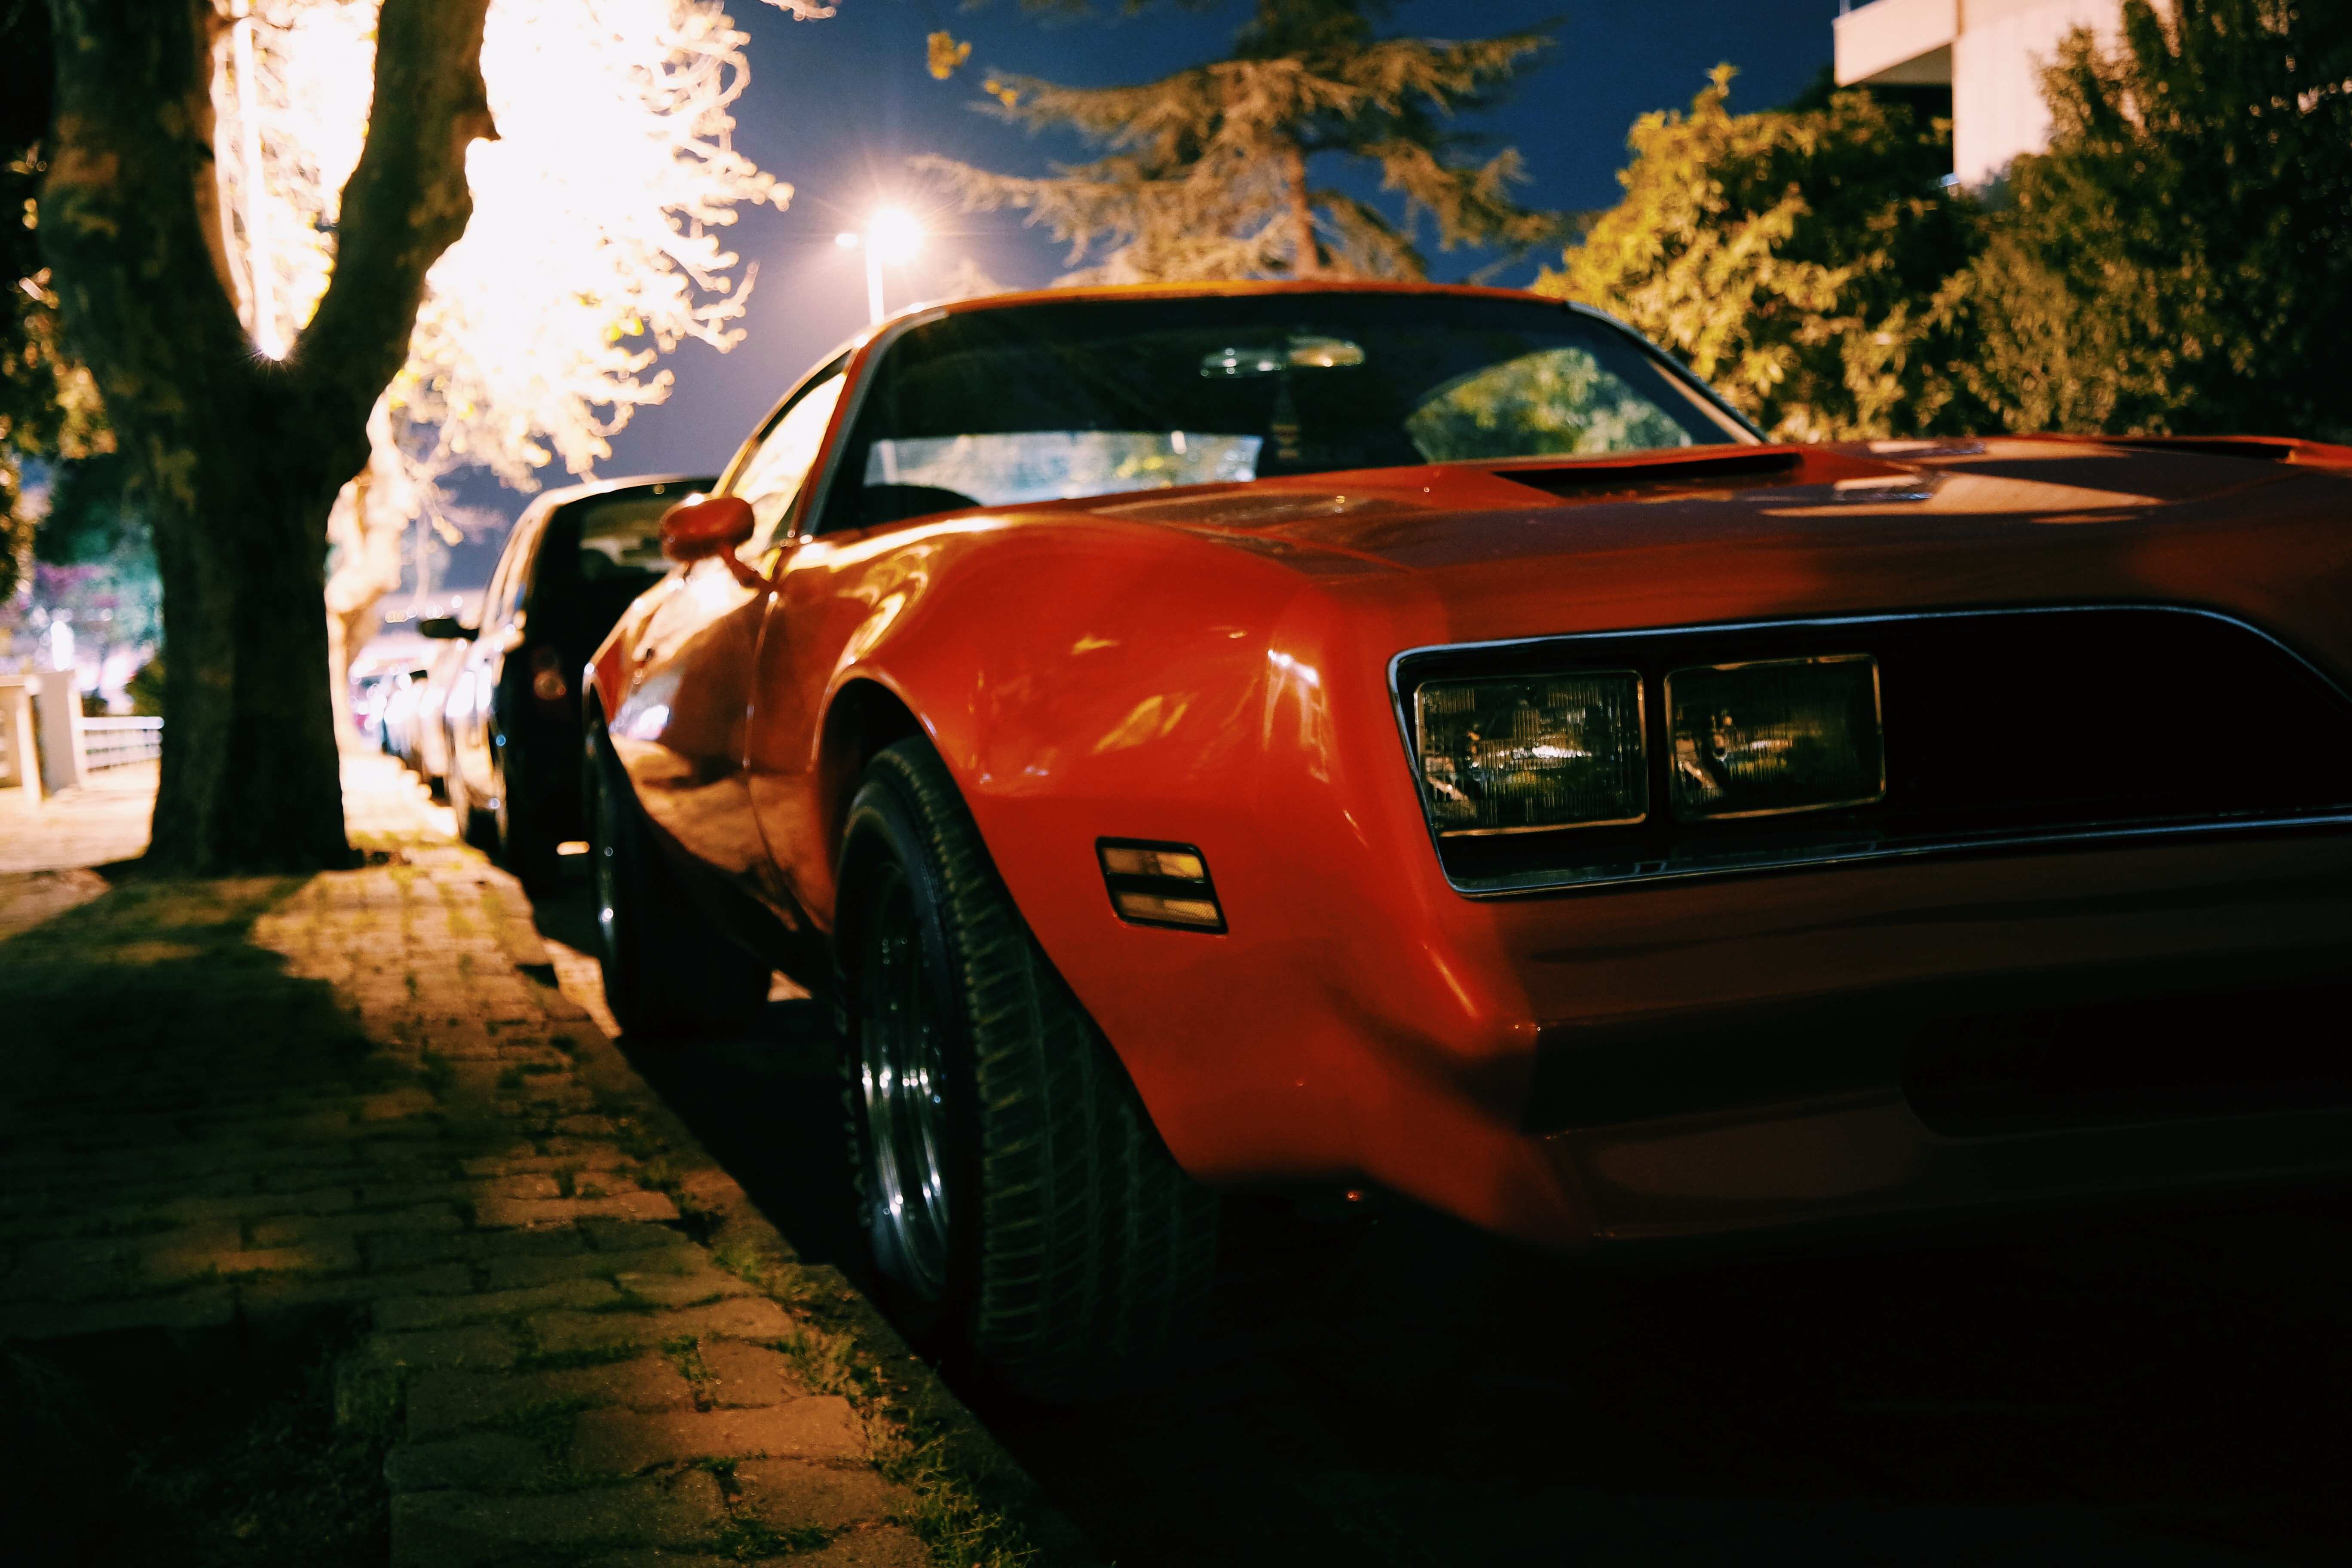 Free Photo Red Classic Muscle Car Sidewalk Vintage Car Parked